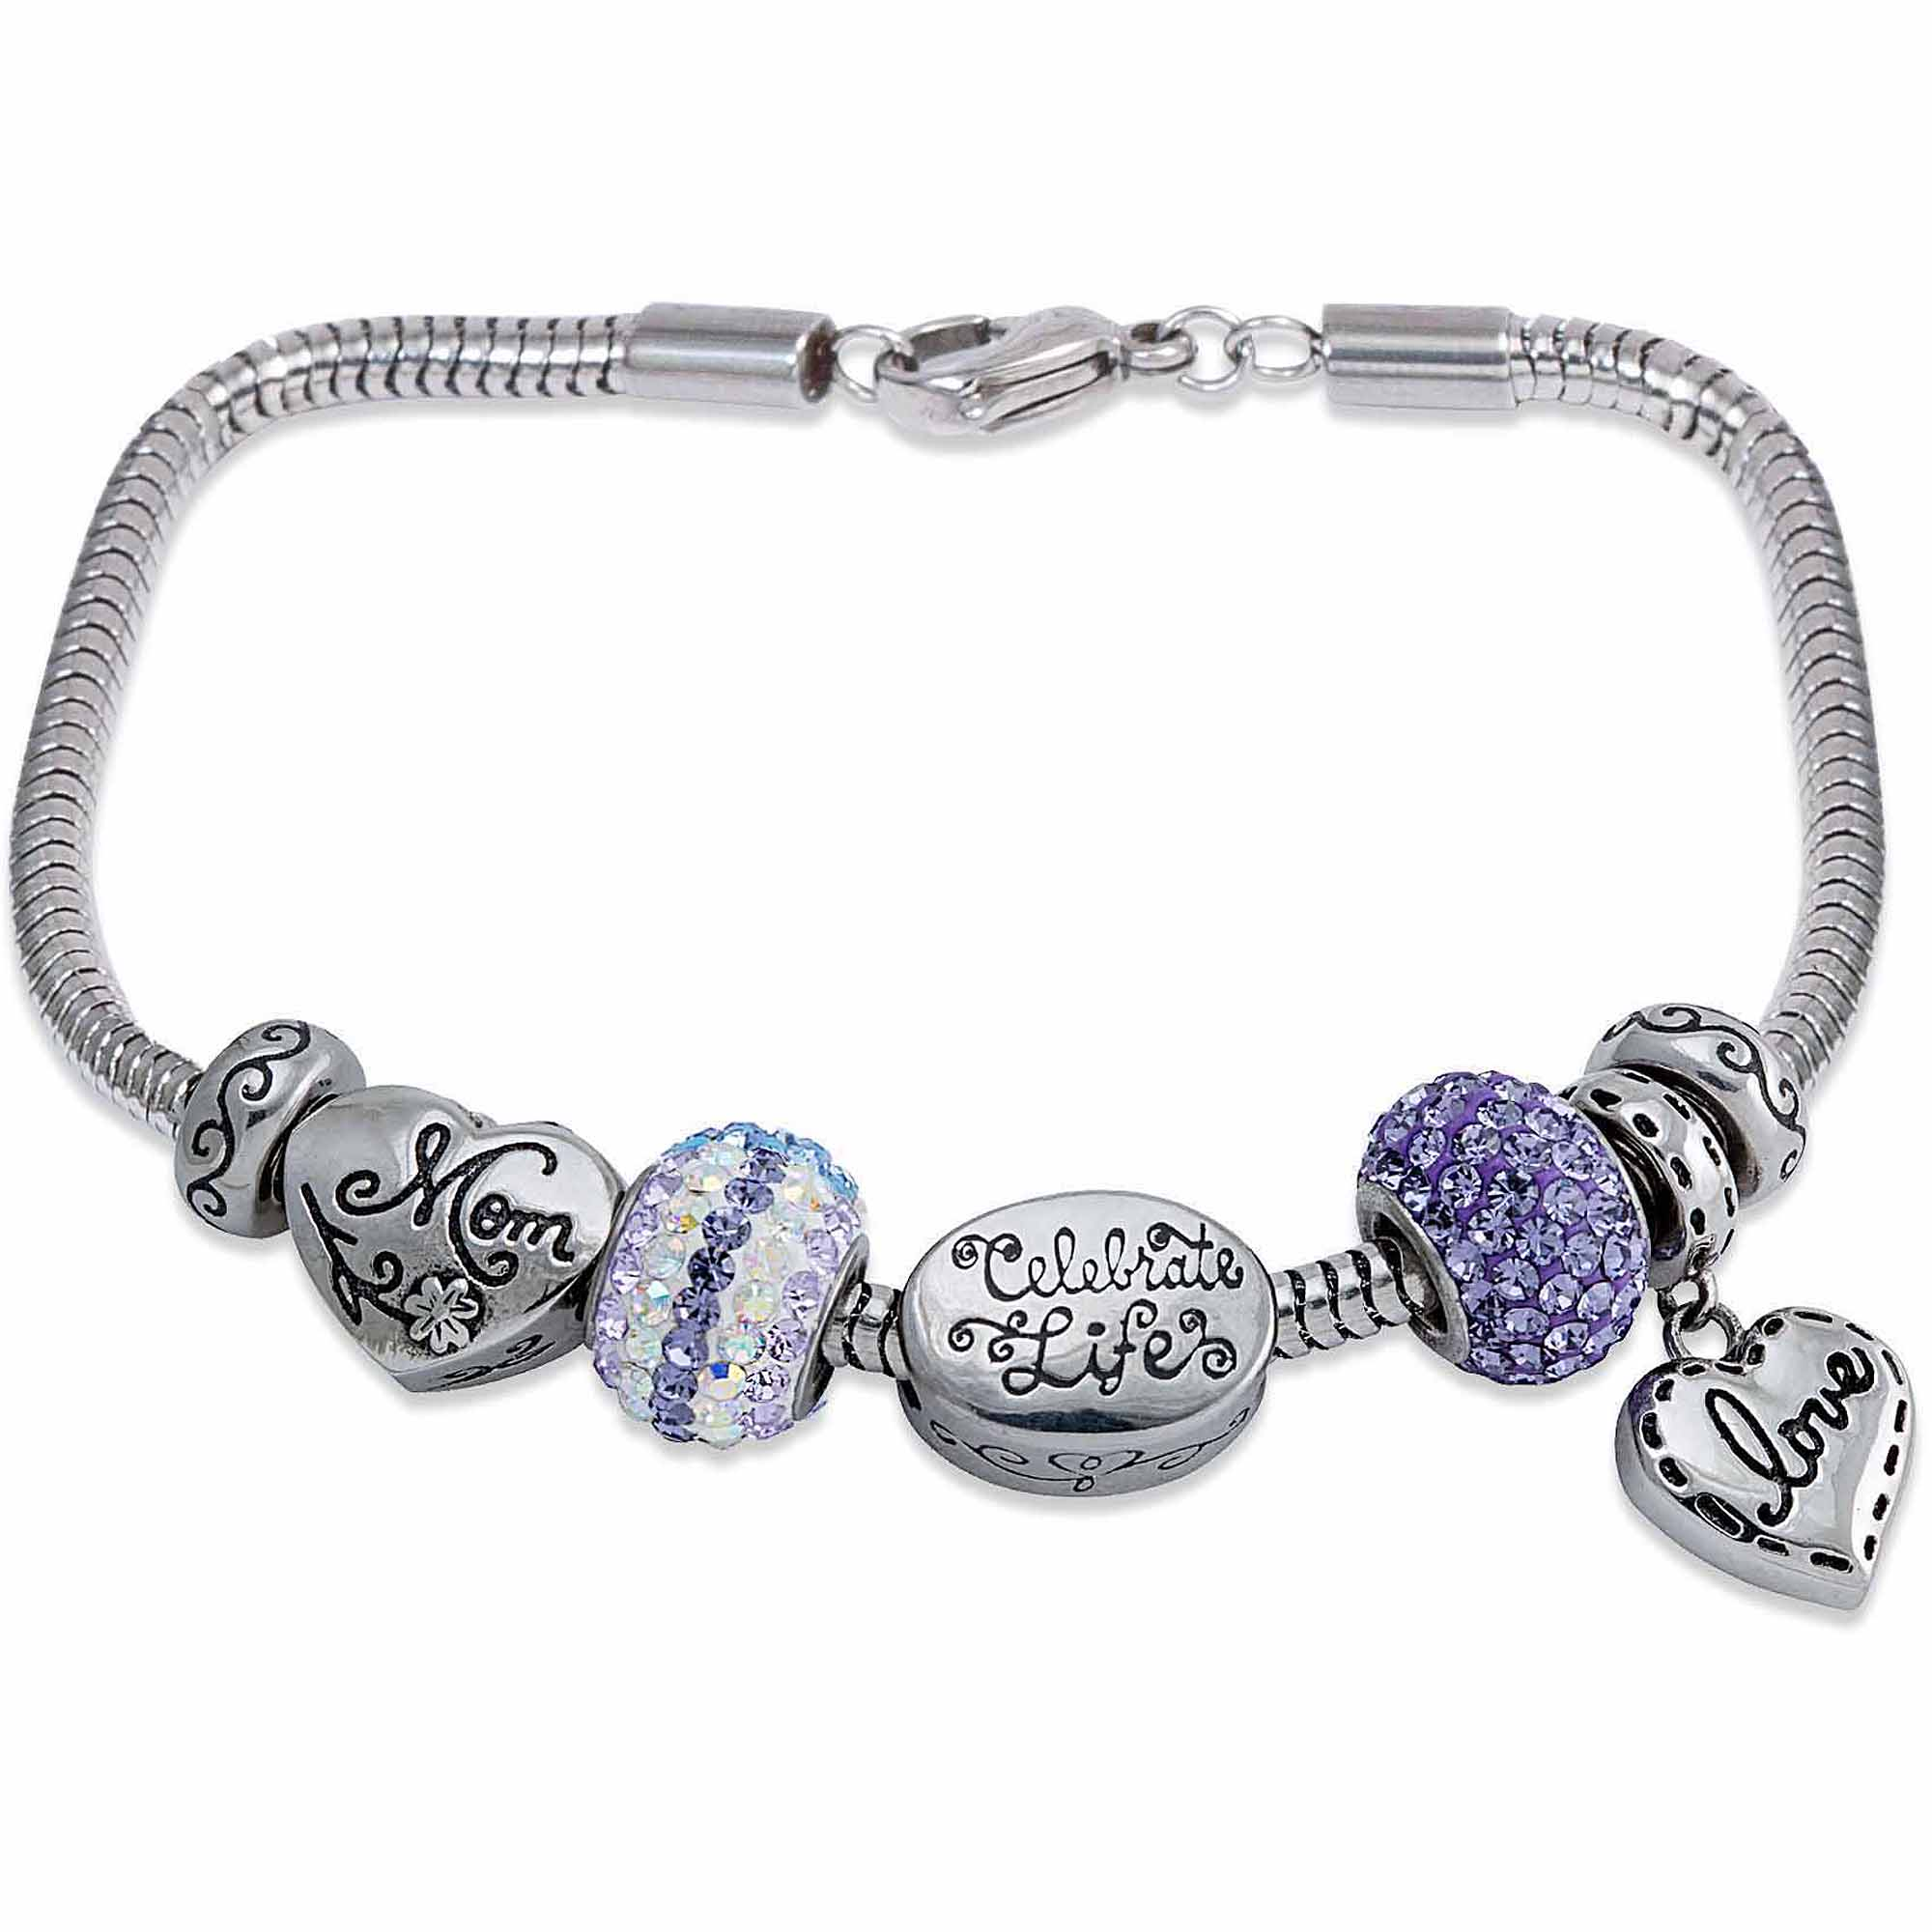 charm bracelets for women connections from hallmark stainless steel limited edition mom charm bracelet  set wonjiuc